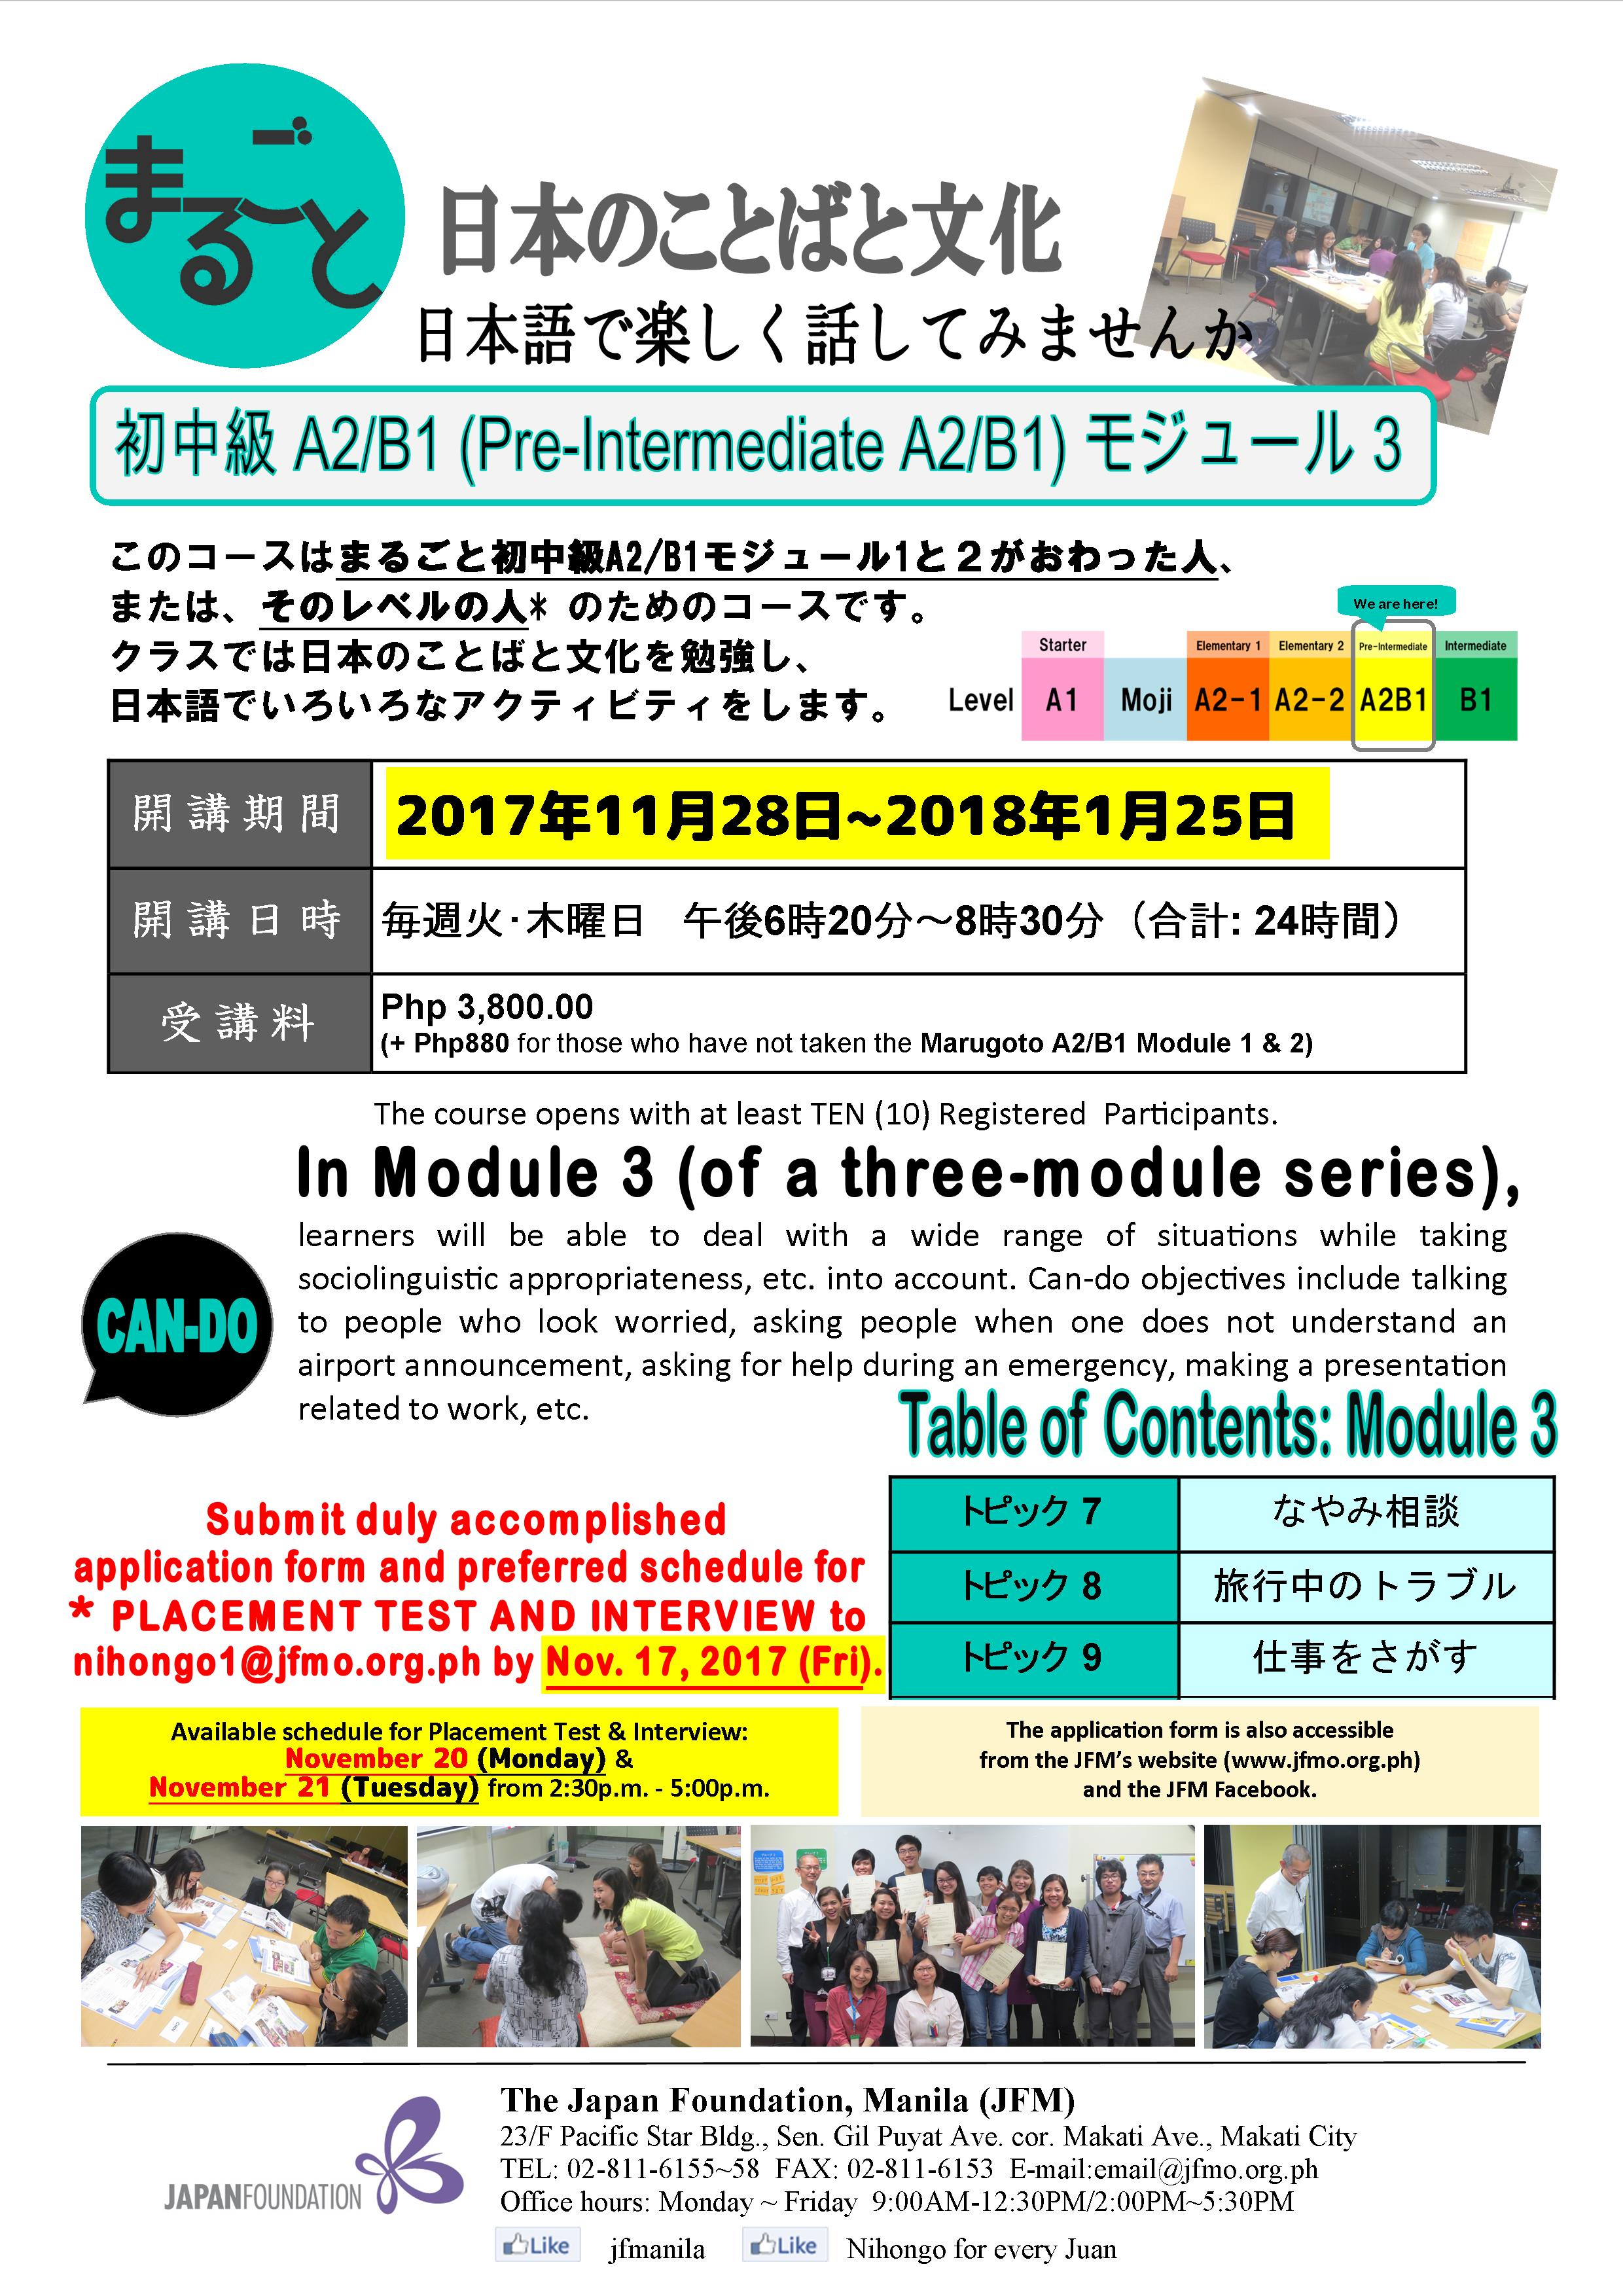 MARUGOTO Pre-Intermediate Japanese: A2/B1 Module 3 – ON-GOING APPLICATION (until November 17)